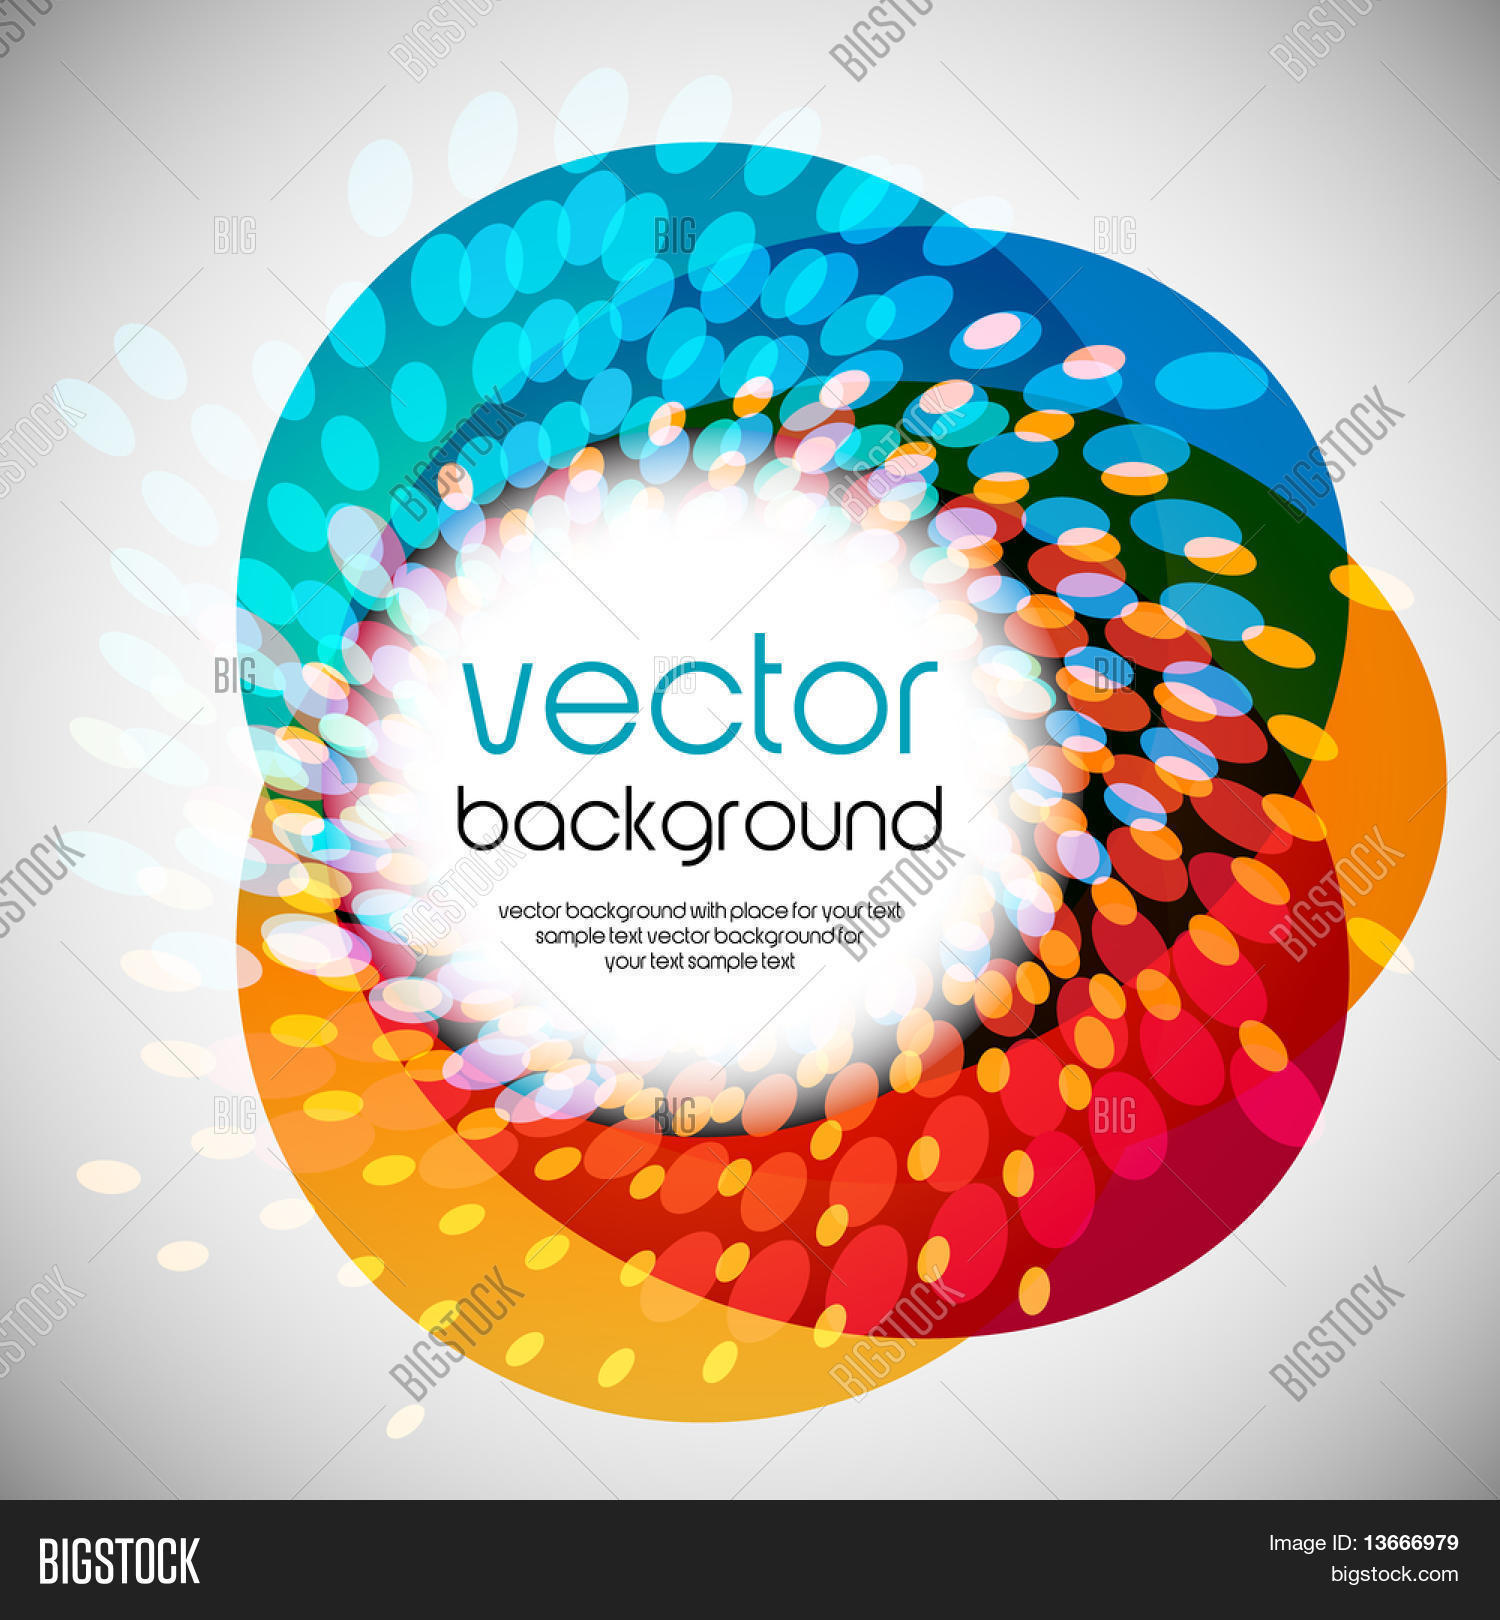 abstract,abstract background,abstract backgrounds,abstract background vector,art,artistic,backdrop,background,background abstract,background green,backgrounds abstract,banner,blue,blue abstract background,blue background abstract,circle,clip,clipart,color,colorful,colorful abstract background,concept,cool,cover,creative,decoration,decorative,design,digital,ellipse,ellipsoid,eps10,flow,graphic,green,green abstract background,green background,green backgrounds,idea,illustration,image,light,modern,orange,pattern,poster,rainbow,red,rounded,space,style,text,transparent,trendy,vector,wallpaper,web